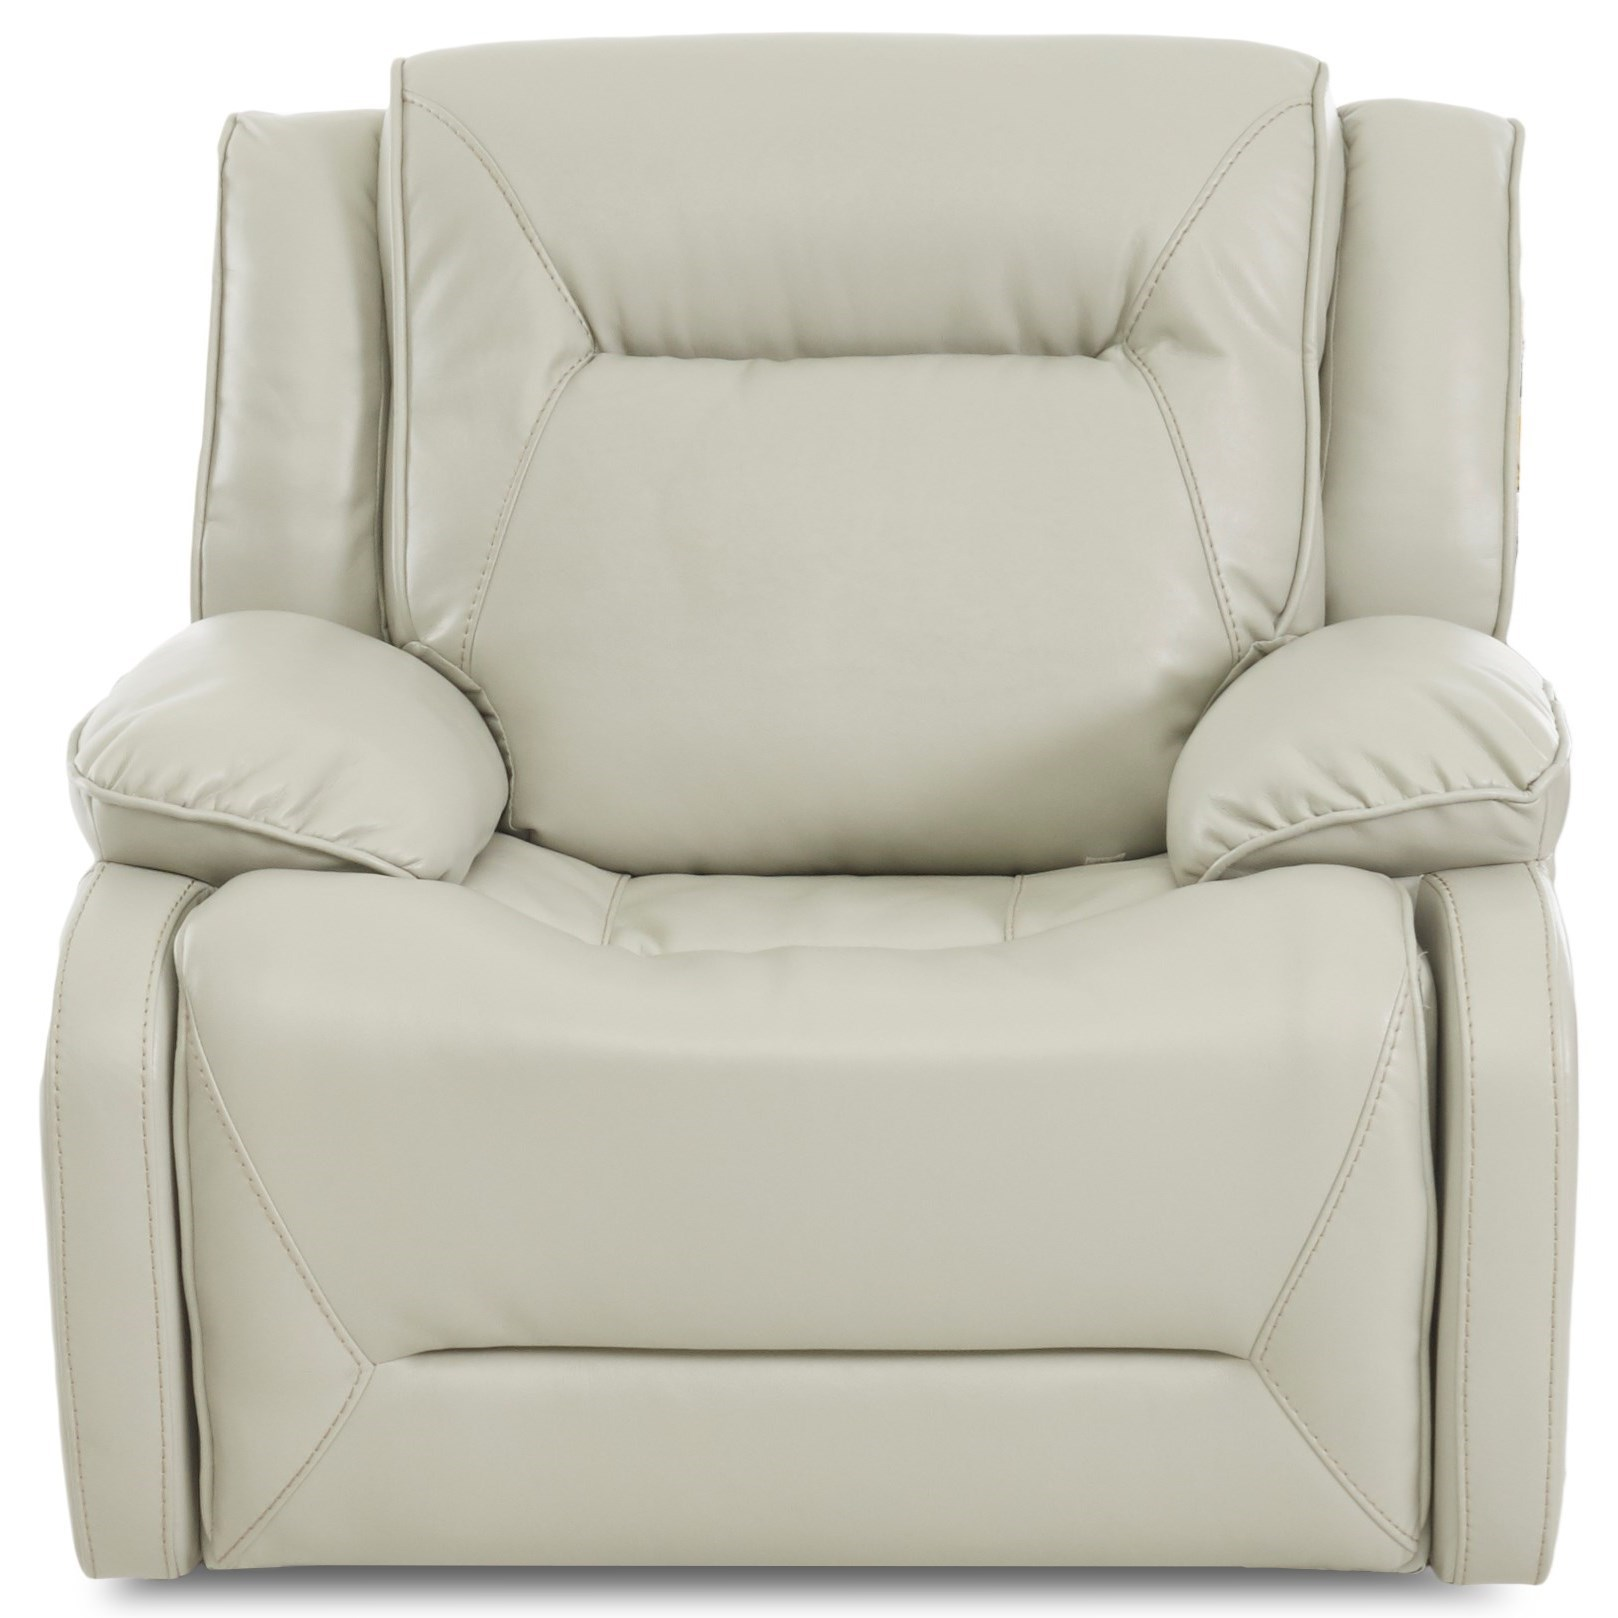 Klaussner International Dansby Power Reclining Chair with Power